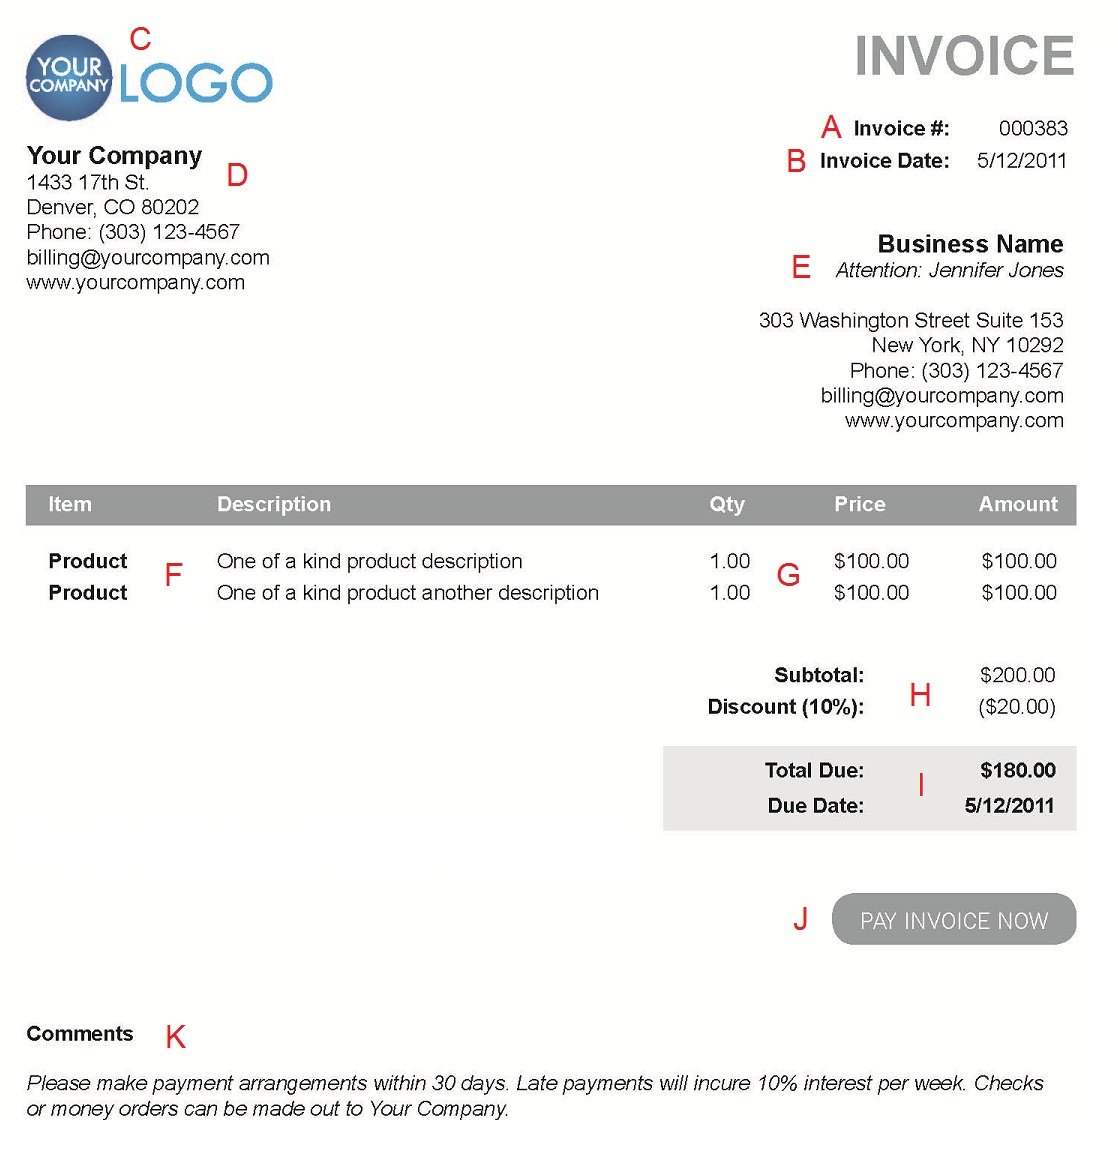 Coolmathgamesus  Picturesque The  Different Sections Of An Electronic Payment Invoice With Marvelous A  With Endearing Display Invoice Also Invoice S In Addition Invoice Word Templates And Invoice Web App As Well As Invoicing Api Additionally Redmine Invoice From Paysimplecom With Coolmathgamesus  Marvelous The  Different Sections Of An Electronic Payment Invoice With Endearing A  And Picturesque Display Invoice Also Invoice S In Addition Invoice Word Templates From Paysimplecom